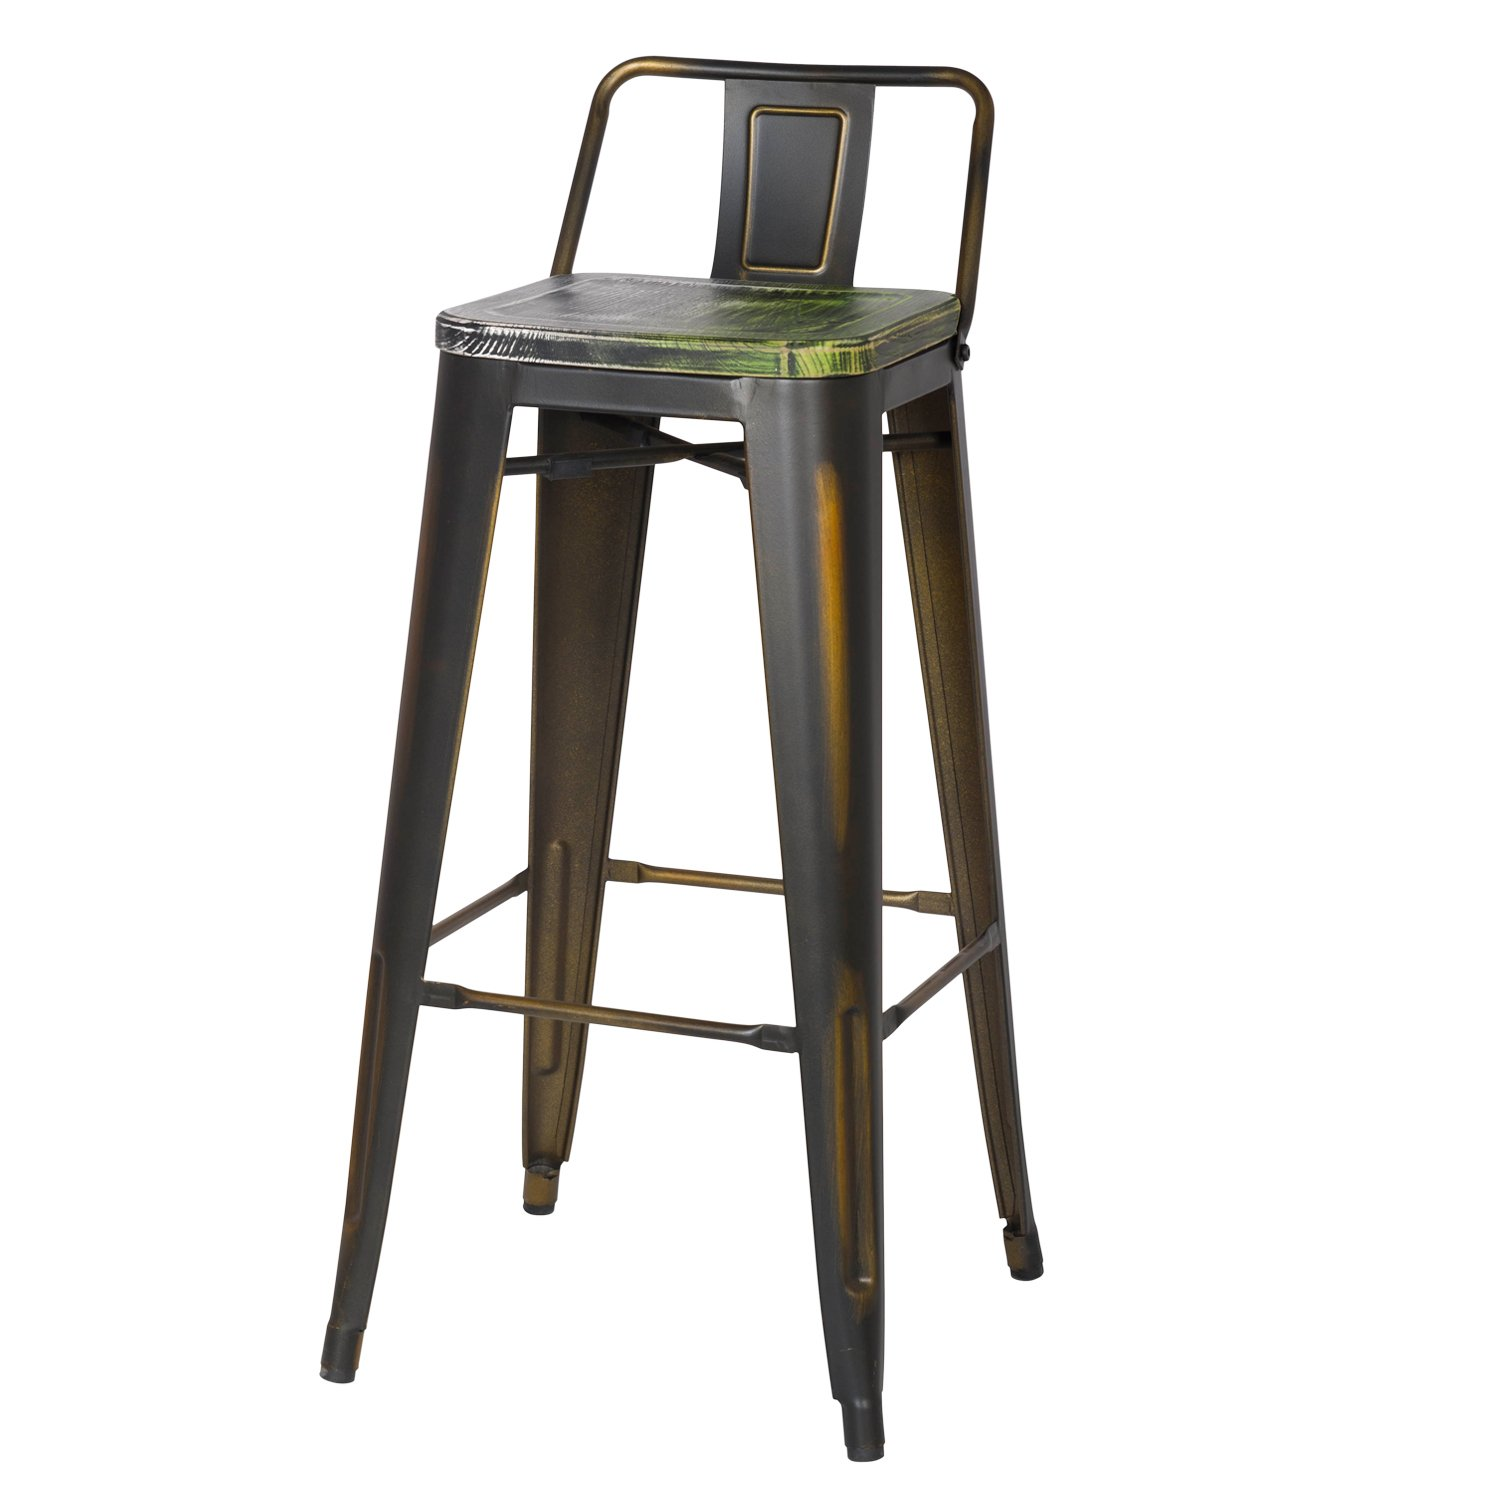 Adeco 30 Inch Industrial Chic Metal Barstool With Half